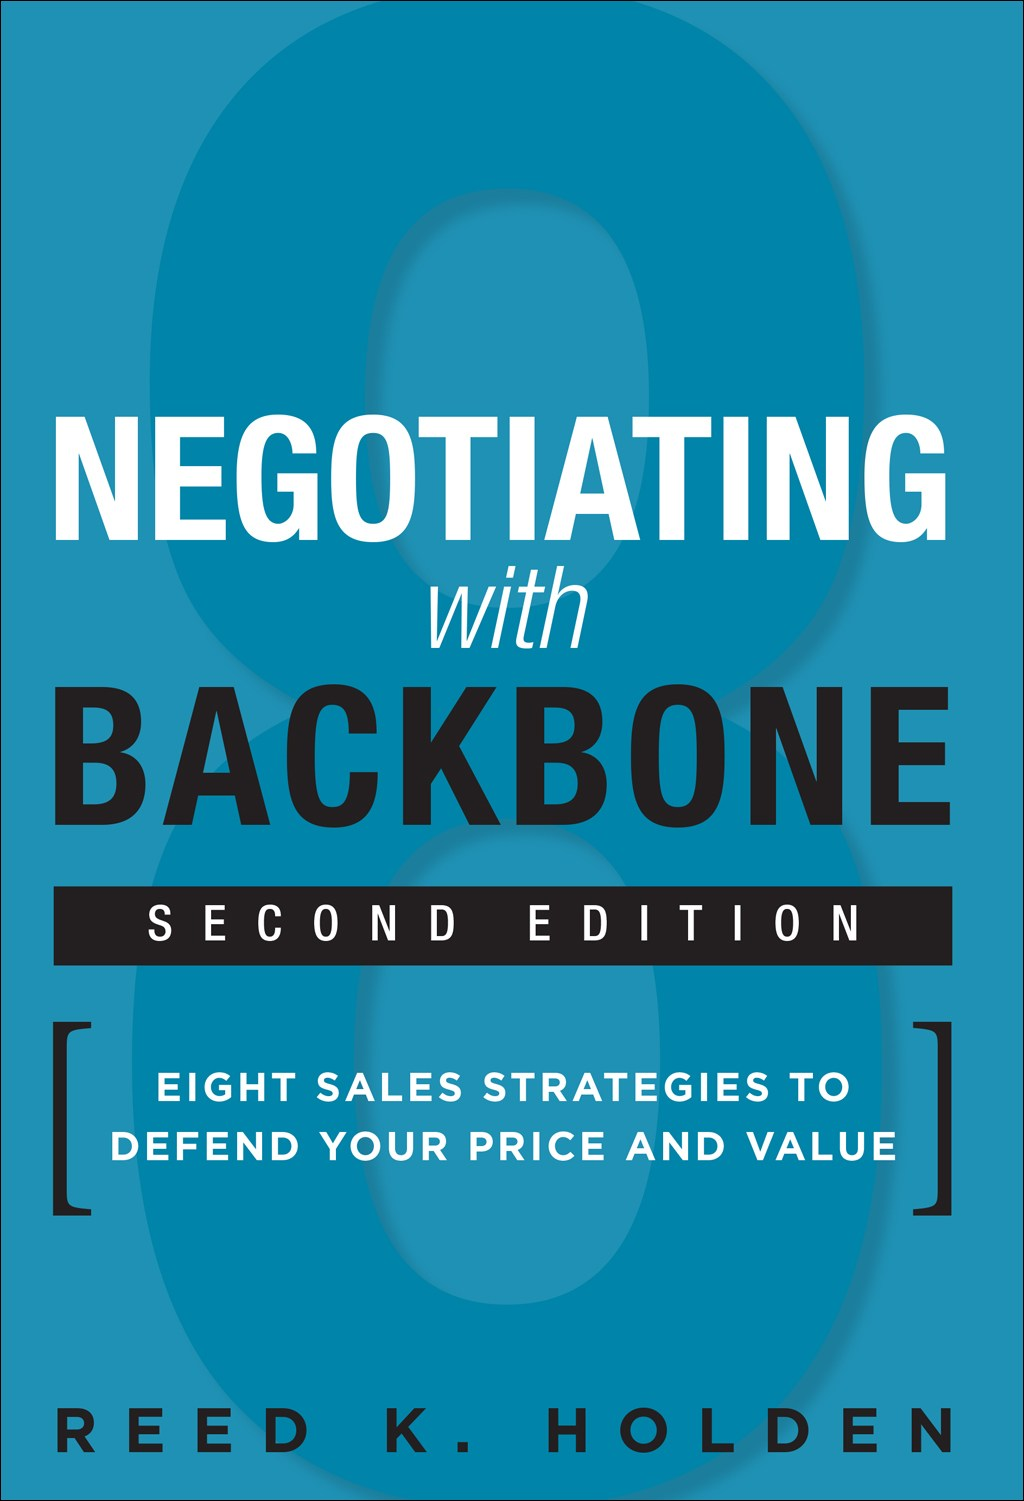 Negotiating with Backbone: Eight Sales Strategies to Defend Your Price and Value, 2nd Edition